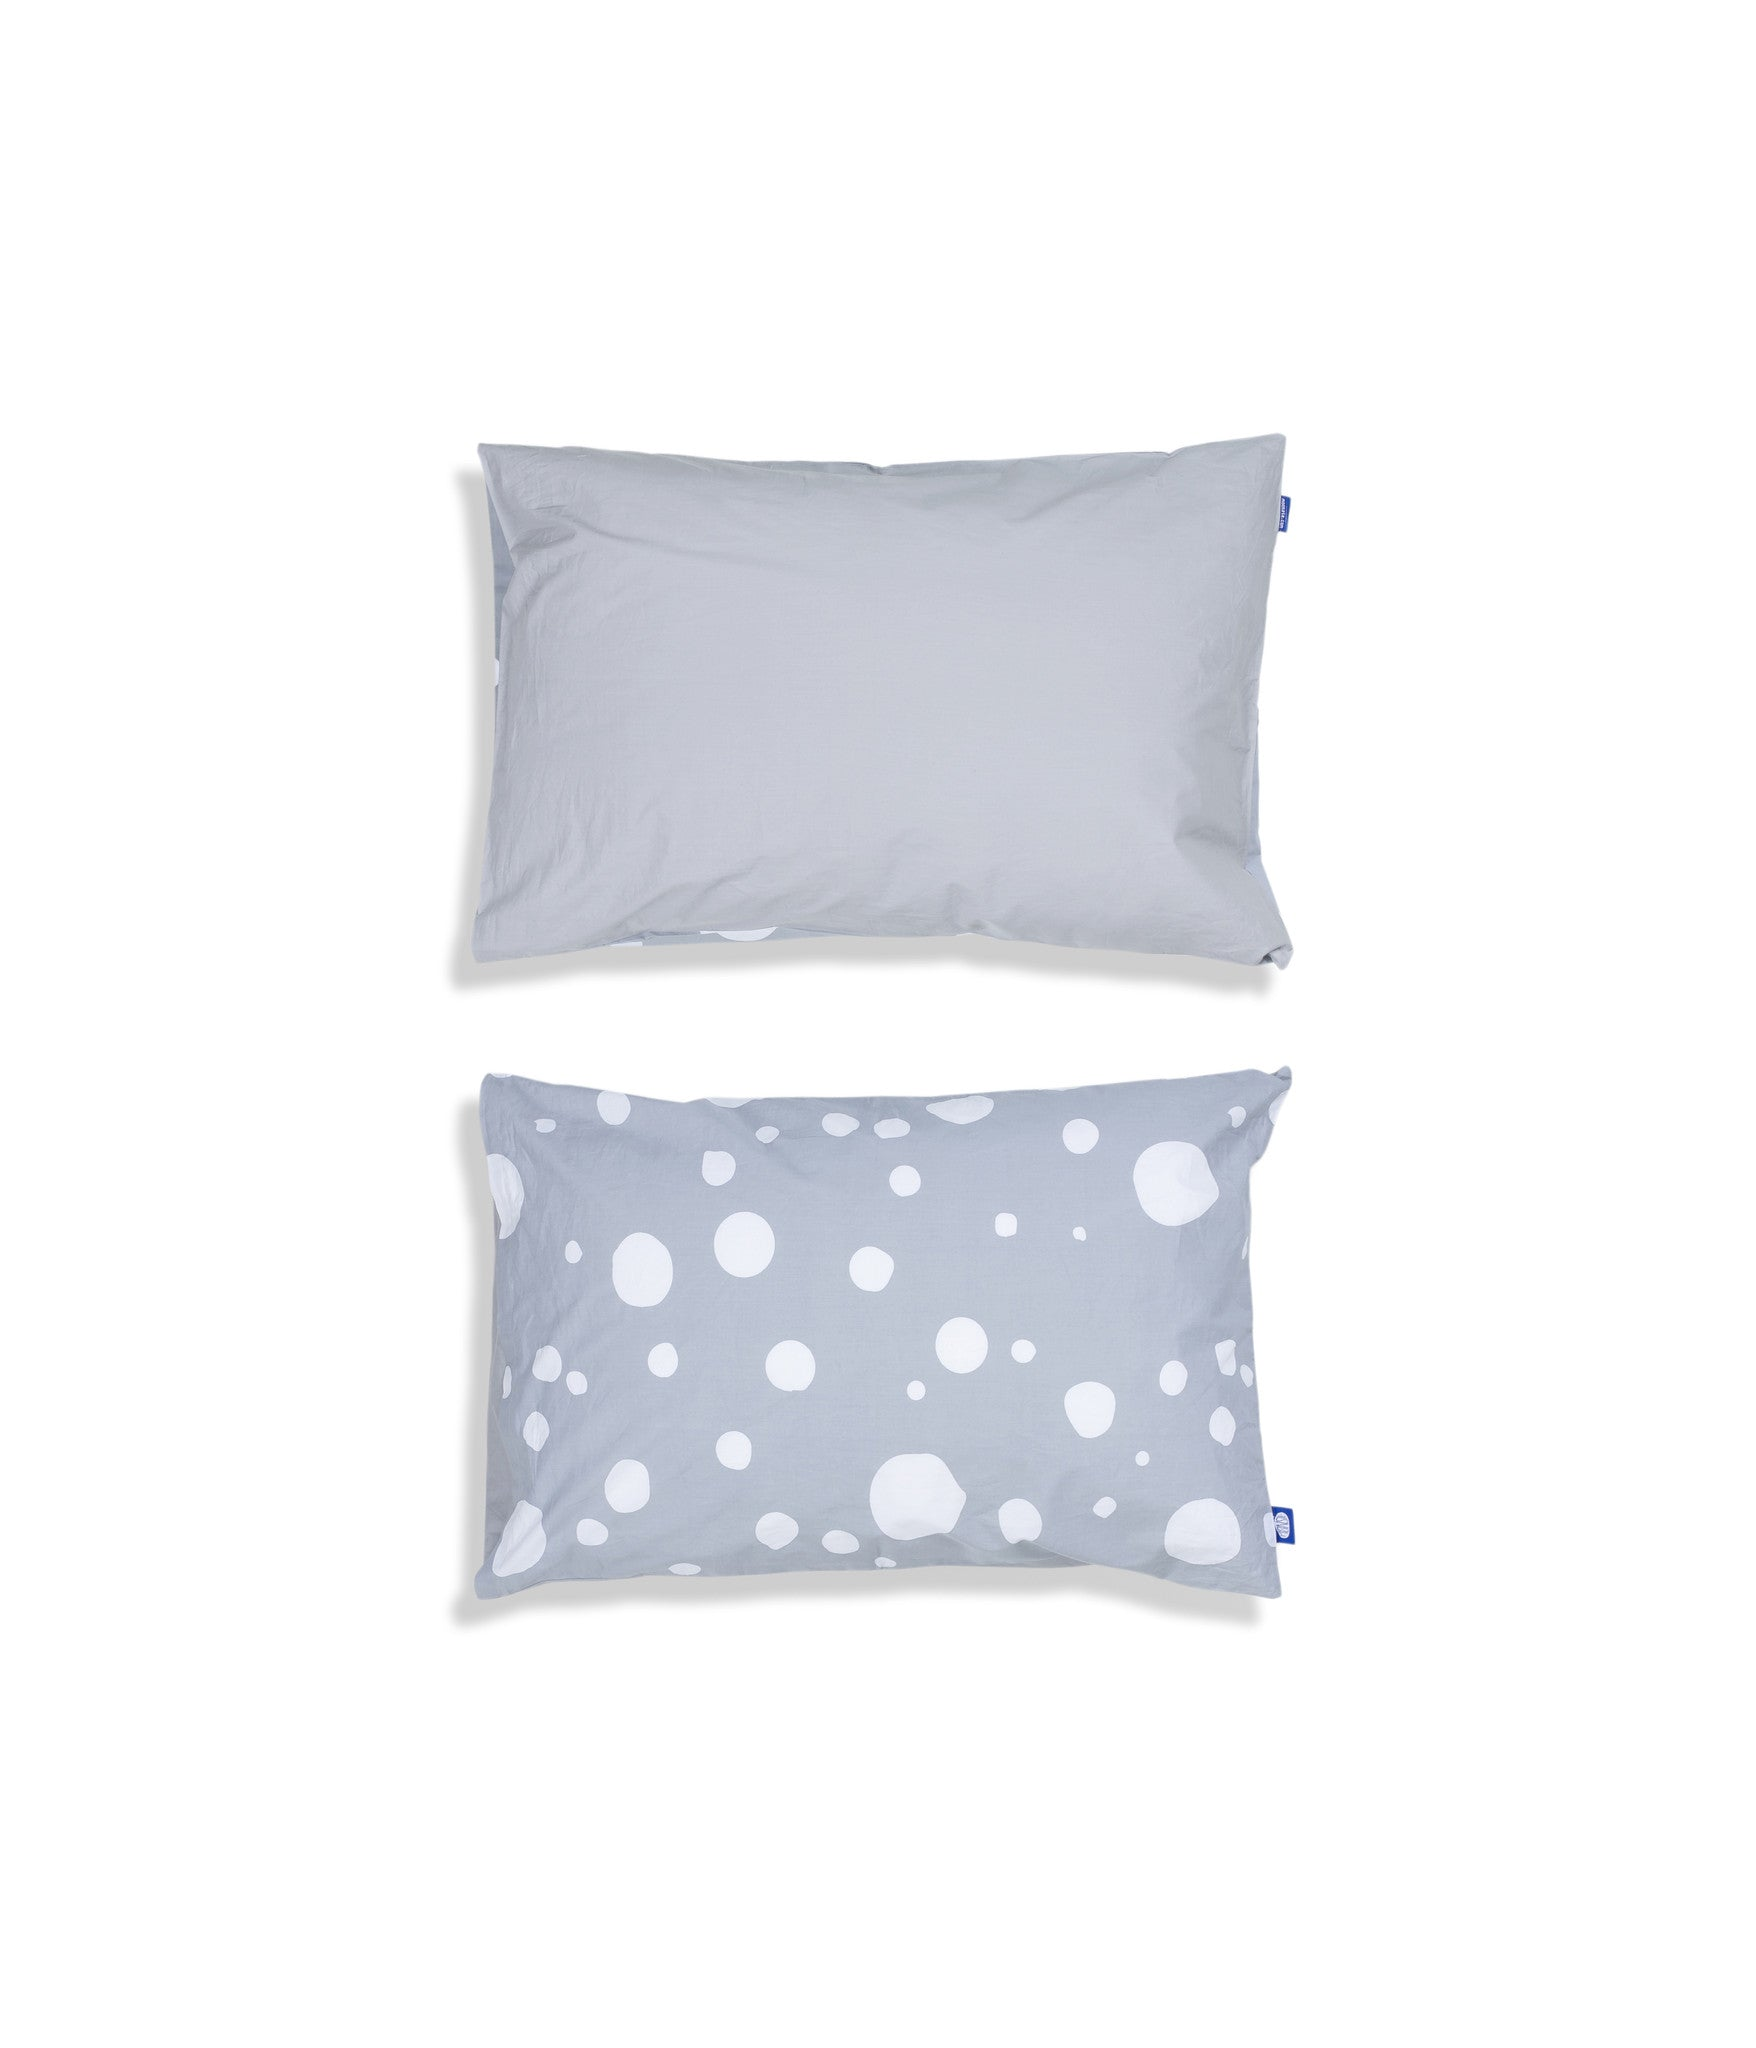 Organic cotton grey cot bed pillow case. Baby bedding. Grey colour. Dotted pattern bed linen.